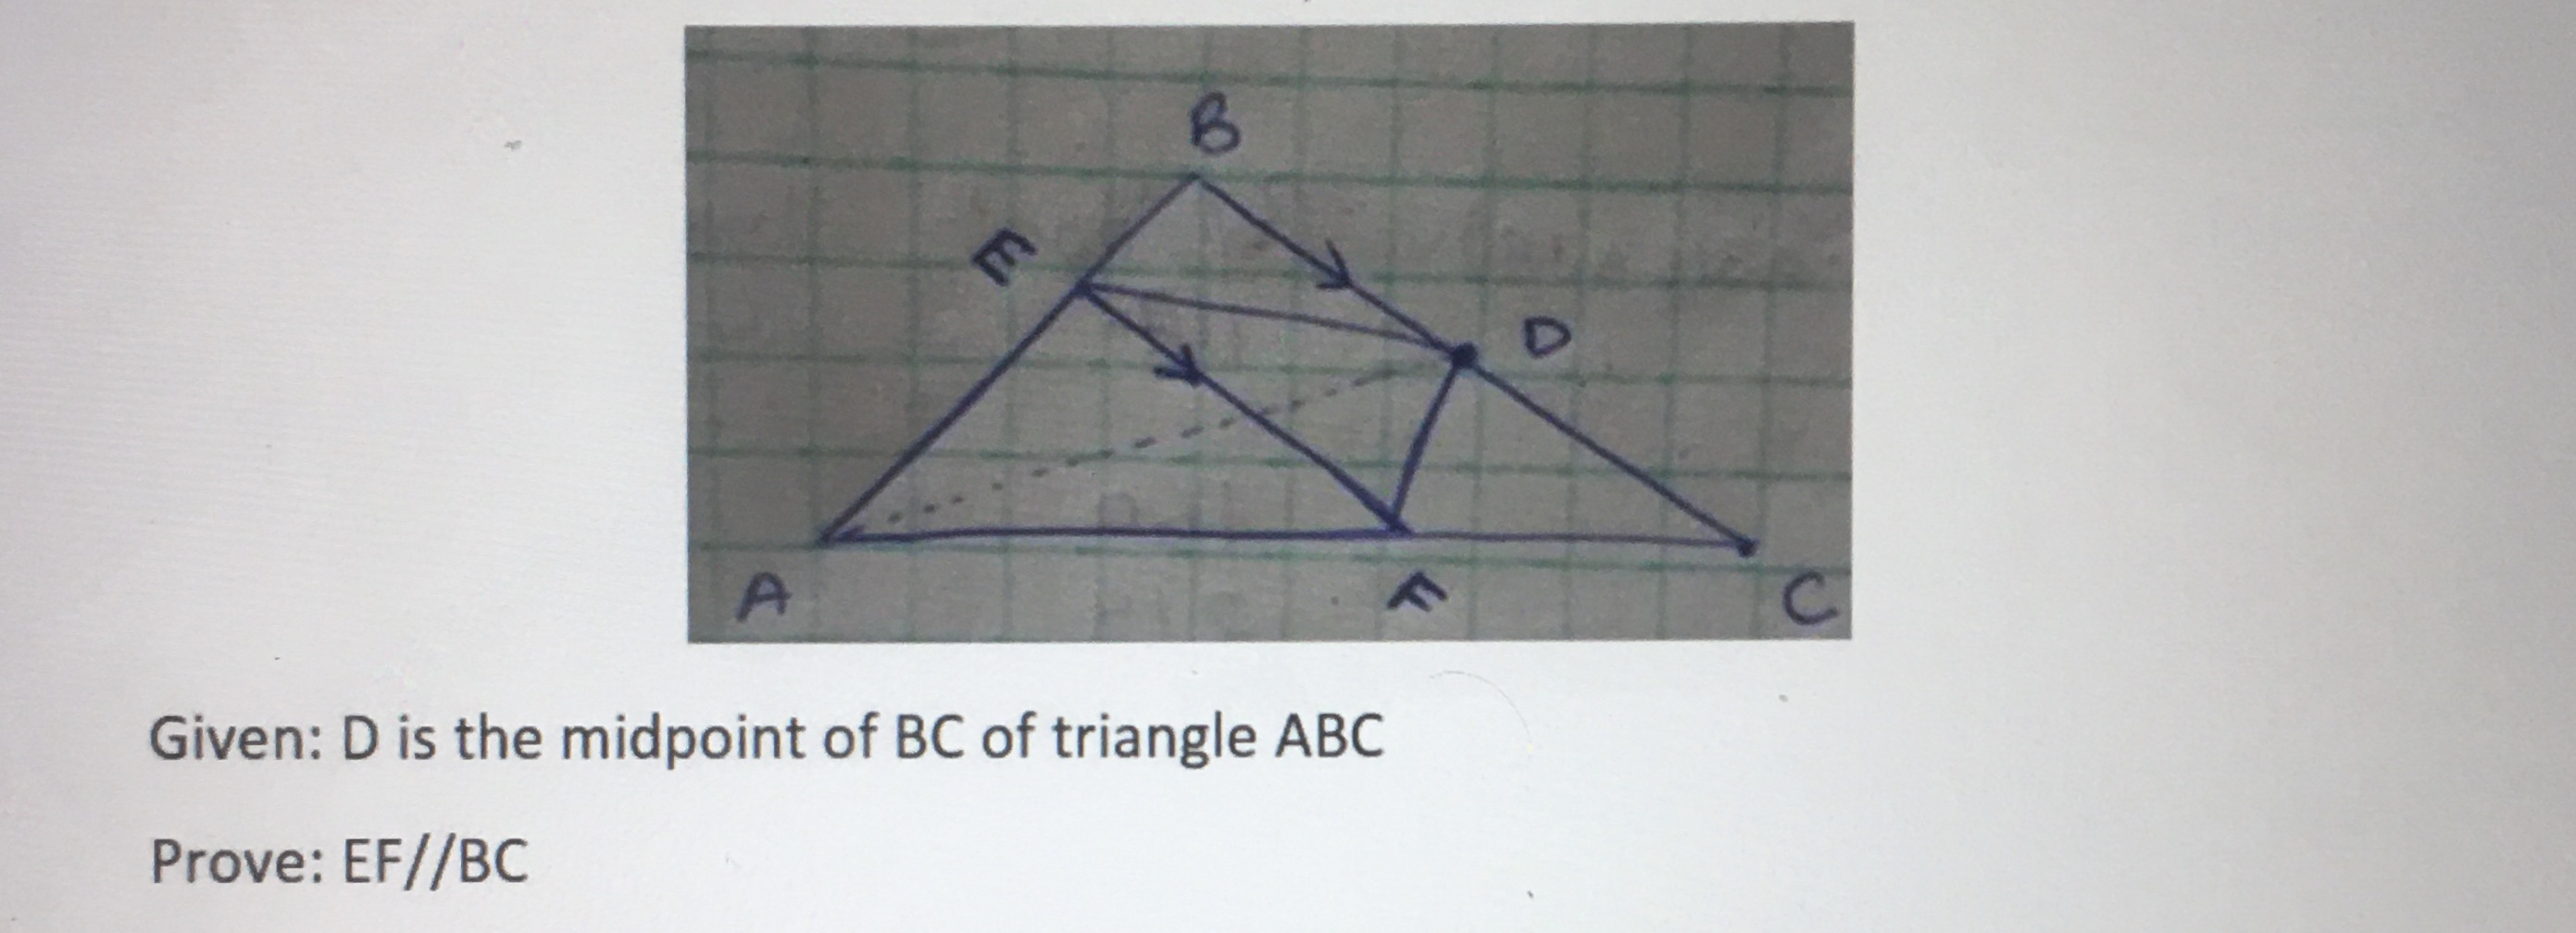 A. C. Given: D is the midpoint of BC of triangle ABC Prove: EF//BC E.